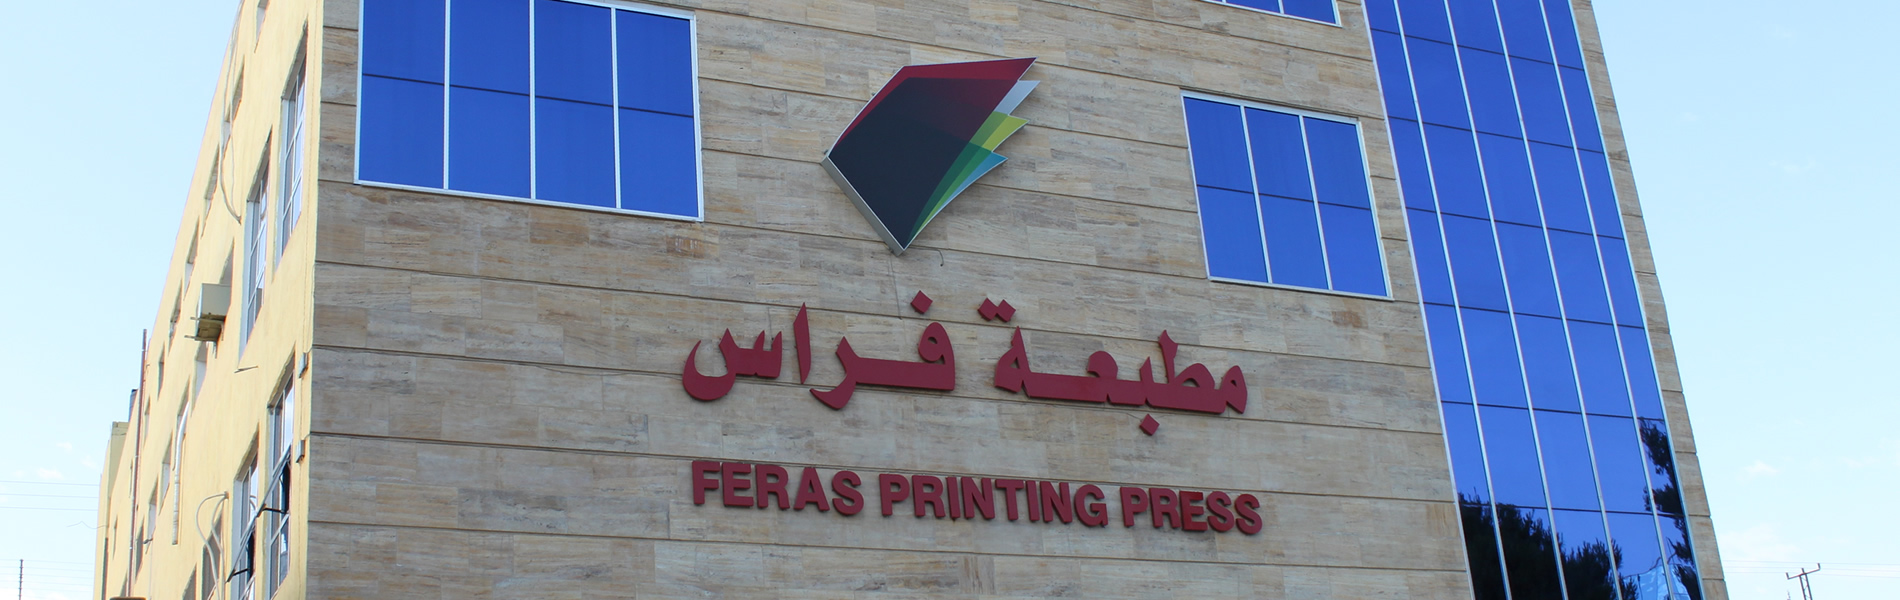 Feras Printing Press Logo on new buliding